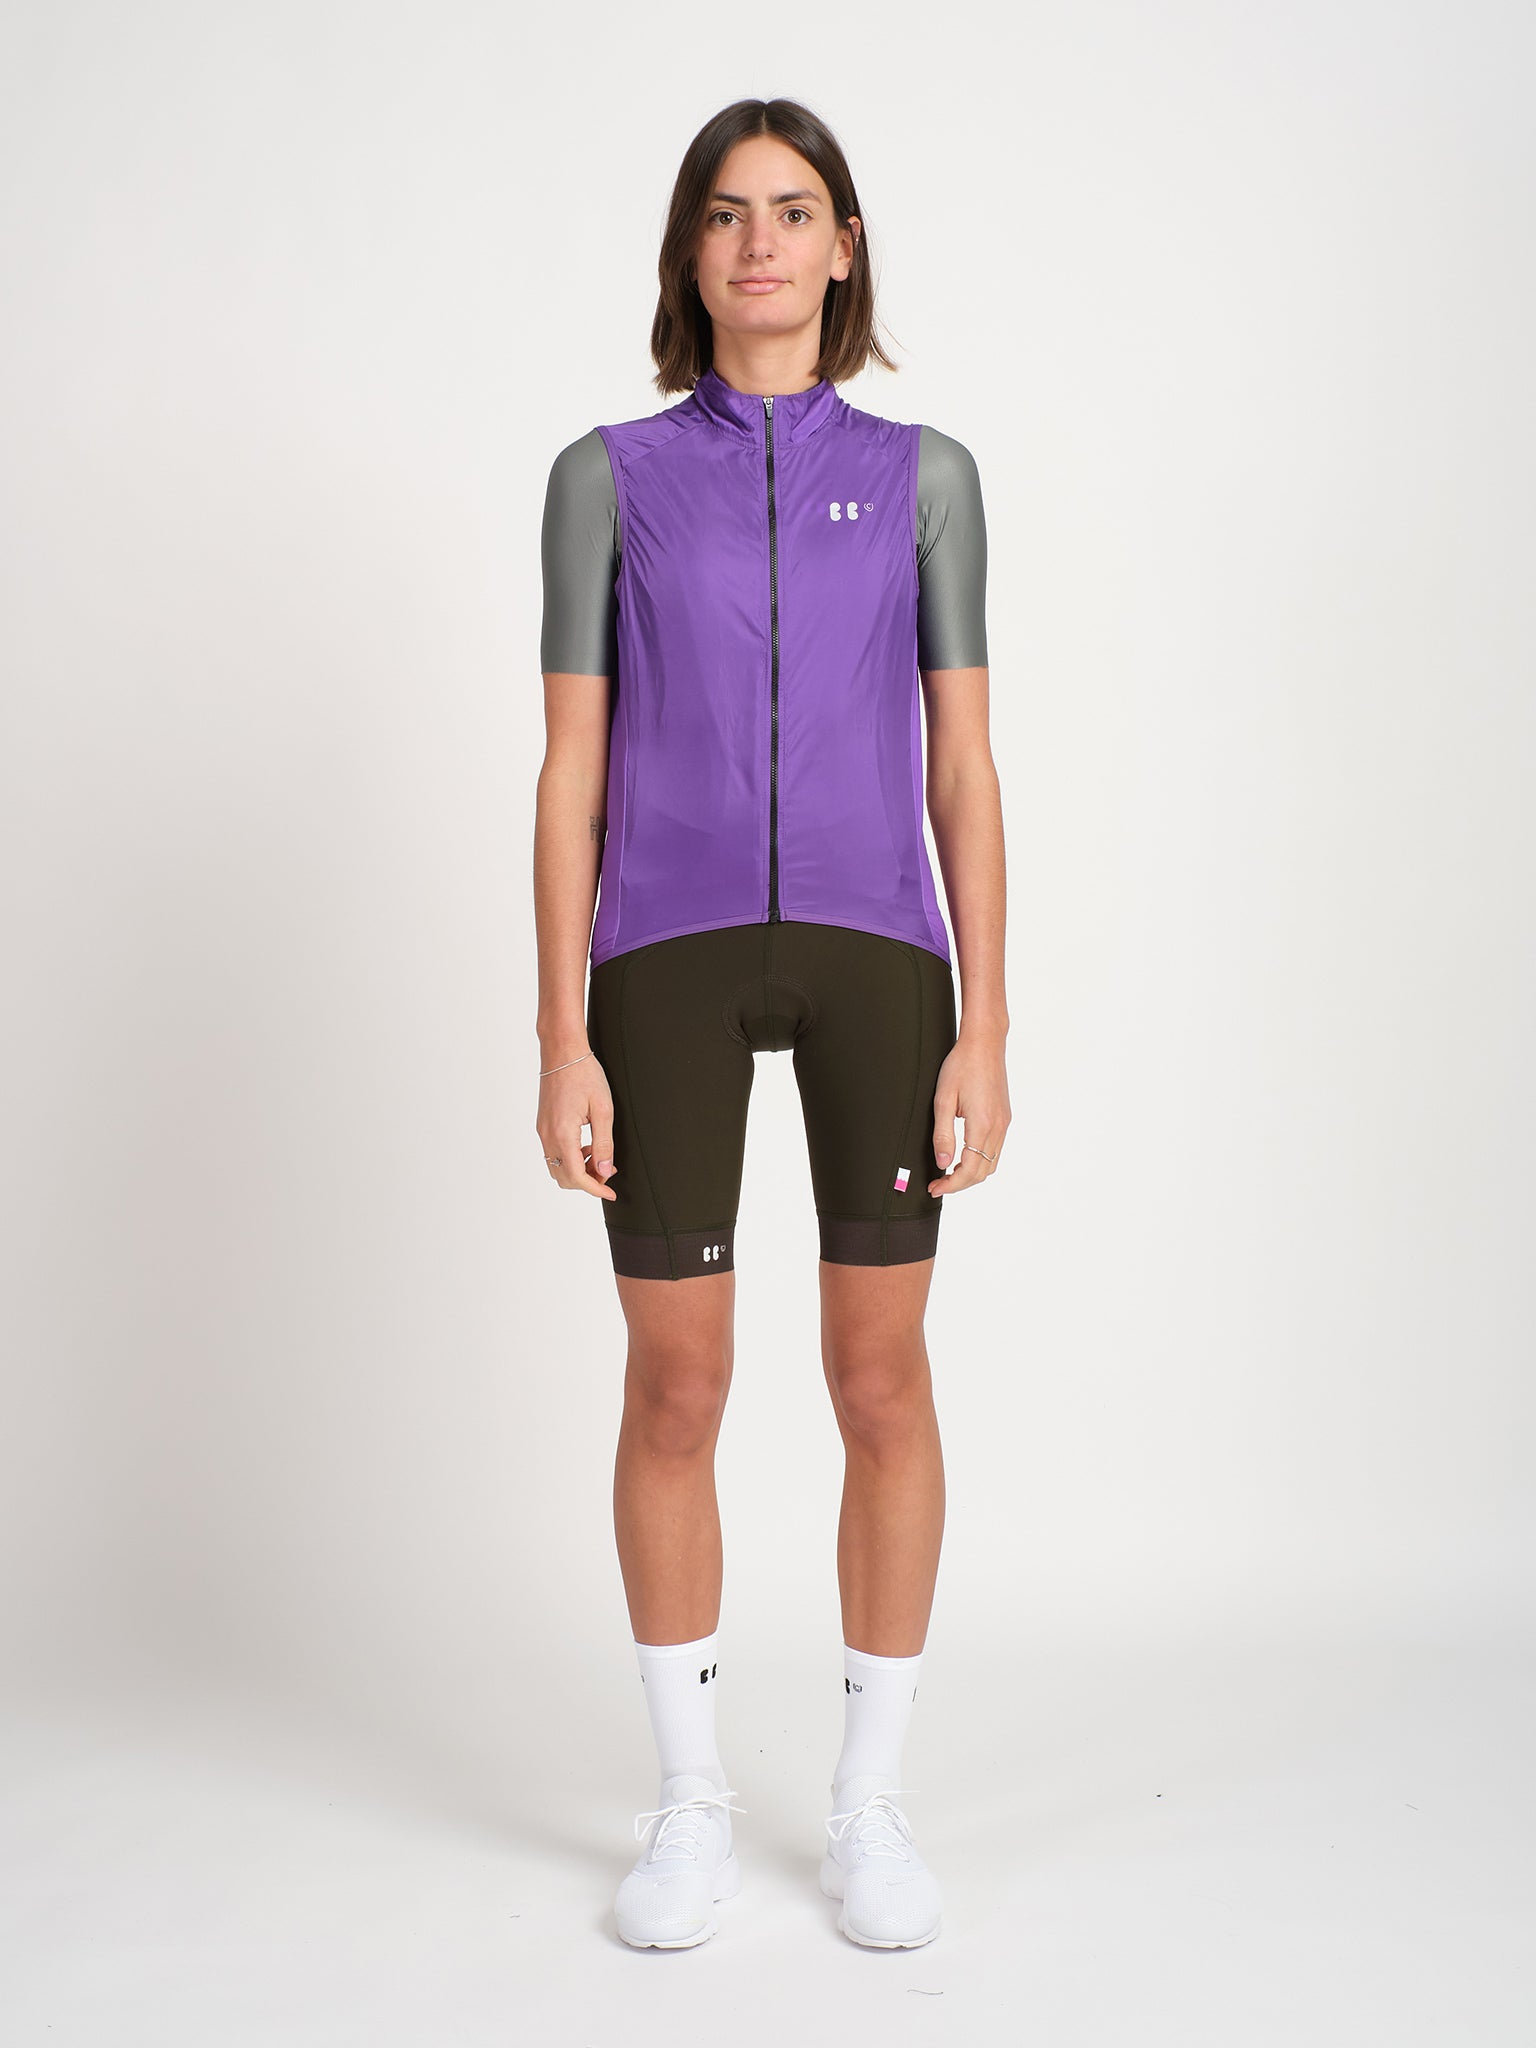 Minimalist purple cycling gilet/vest with bbuc logo for women